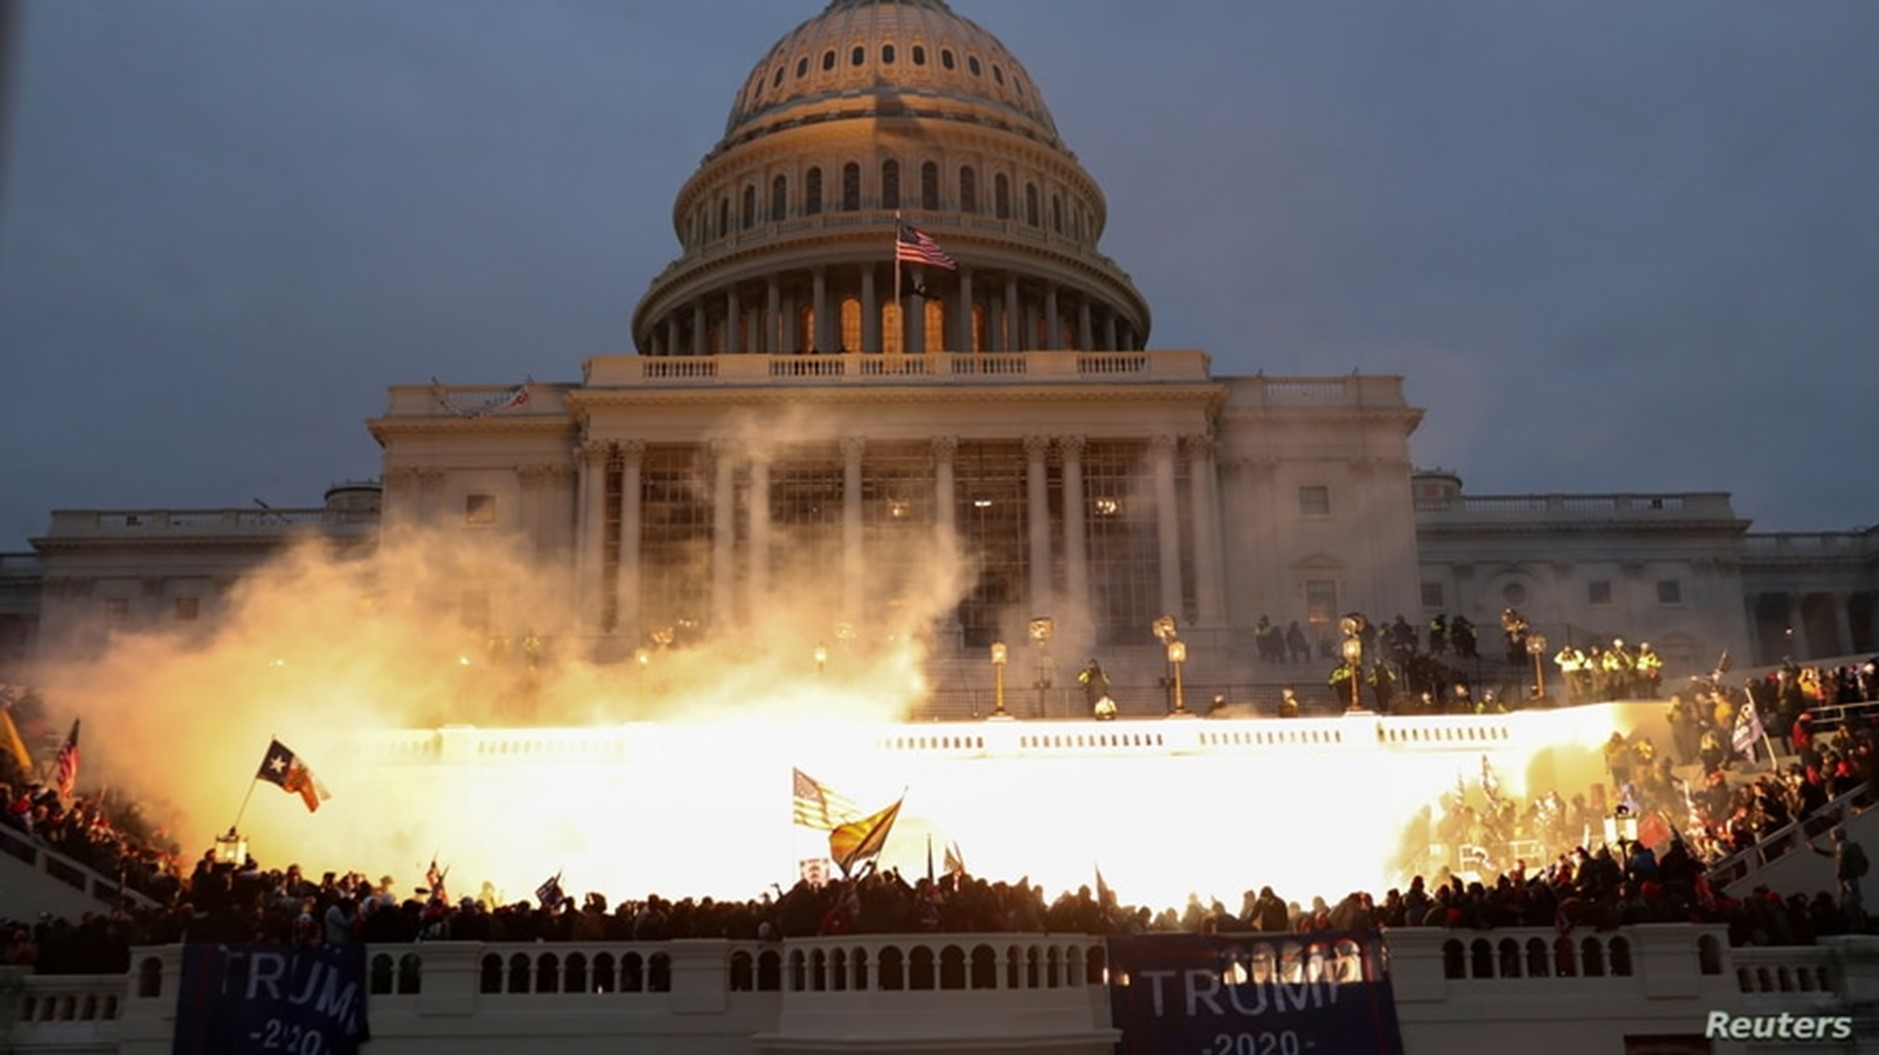 Inauguration Day or Judgement Day?